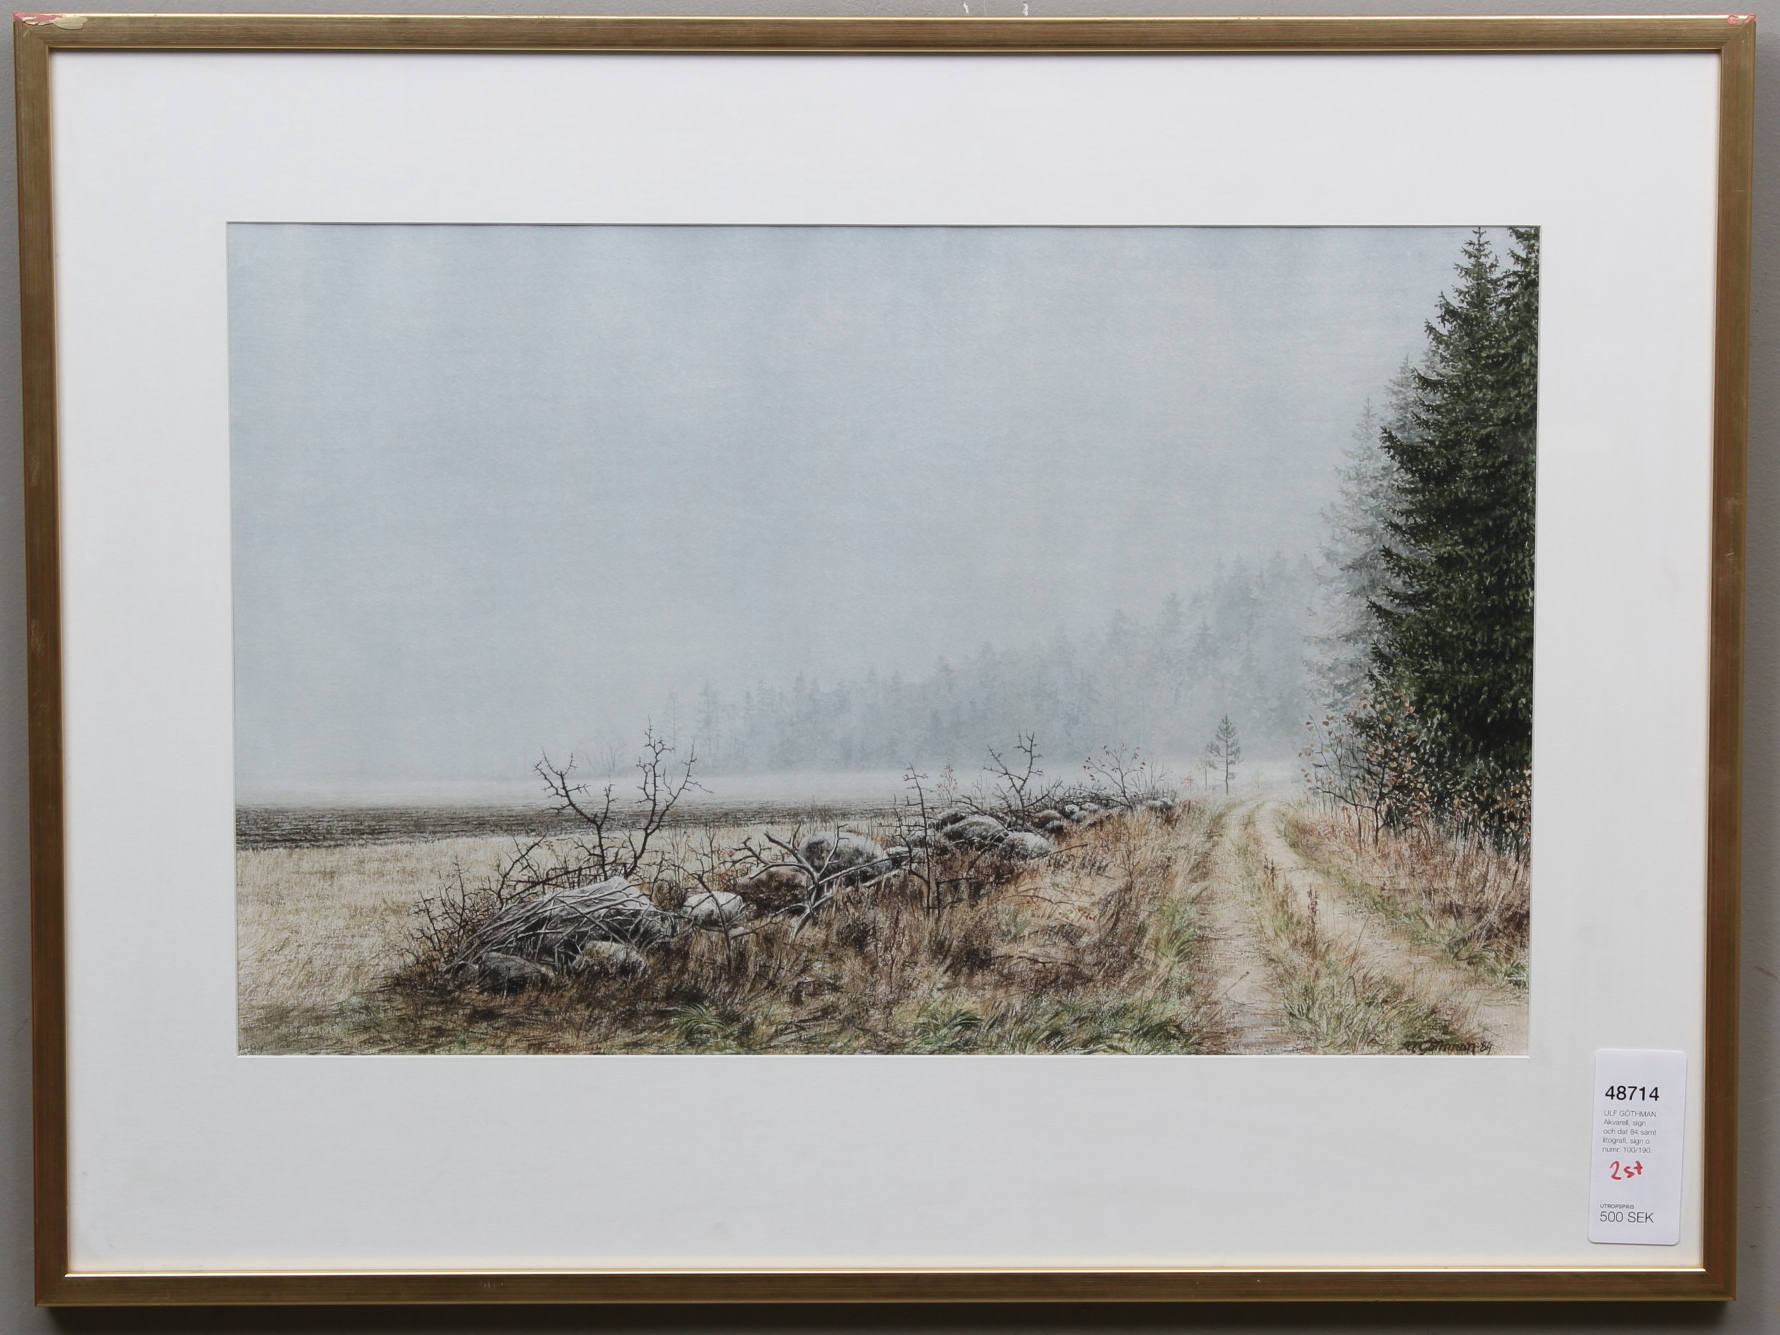 Ulf Gothman Watercolor Sign And Date 84 As Well As Lithography Sign O Number 100 190 Art Paintings Auctionet